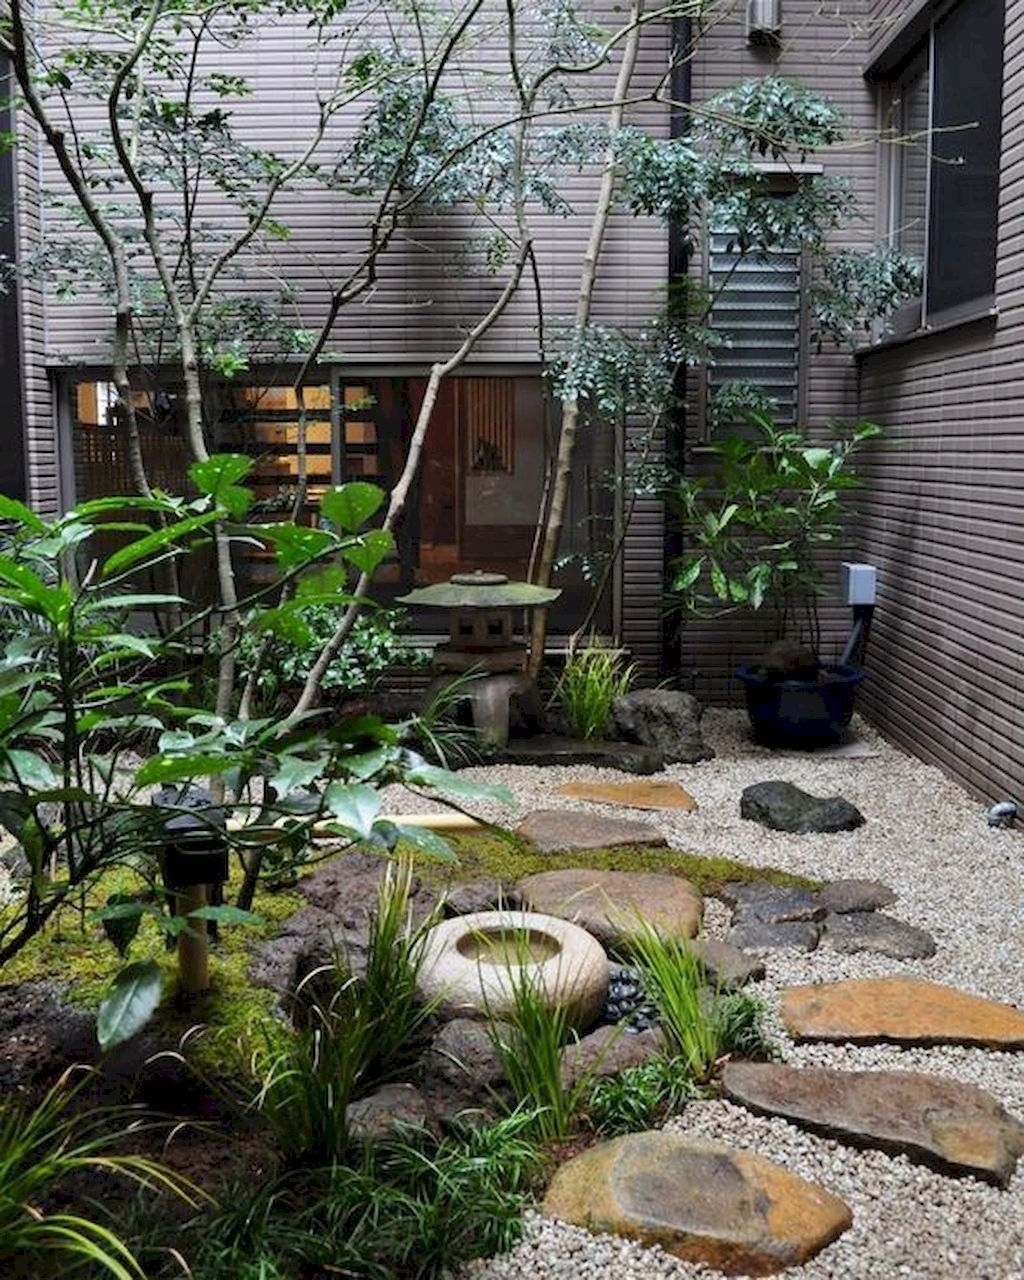 50 Inspiring Japanese Garden Designs For Small Spaces | Garden And pertaining to Zen Garden Designs For Small Spaces